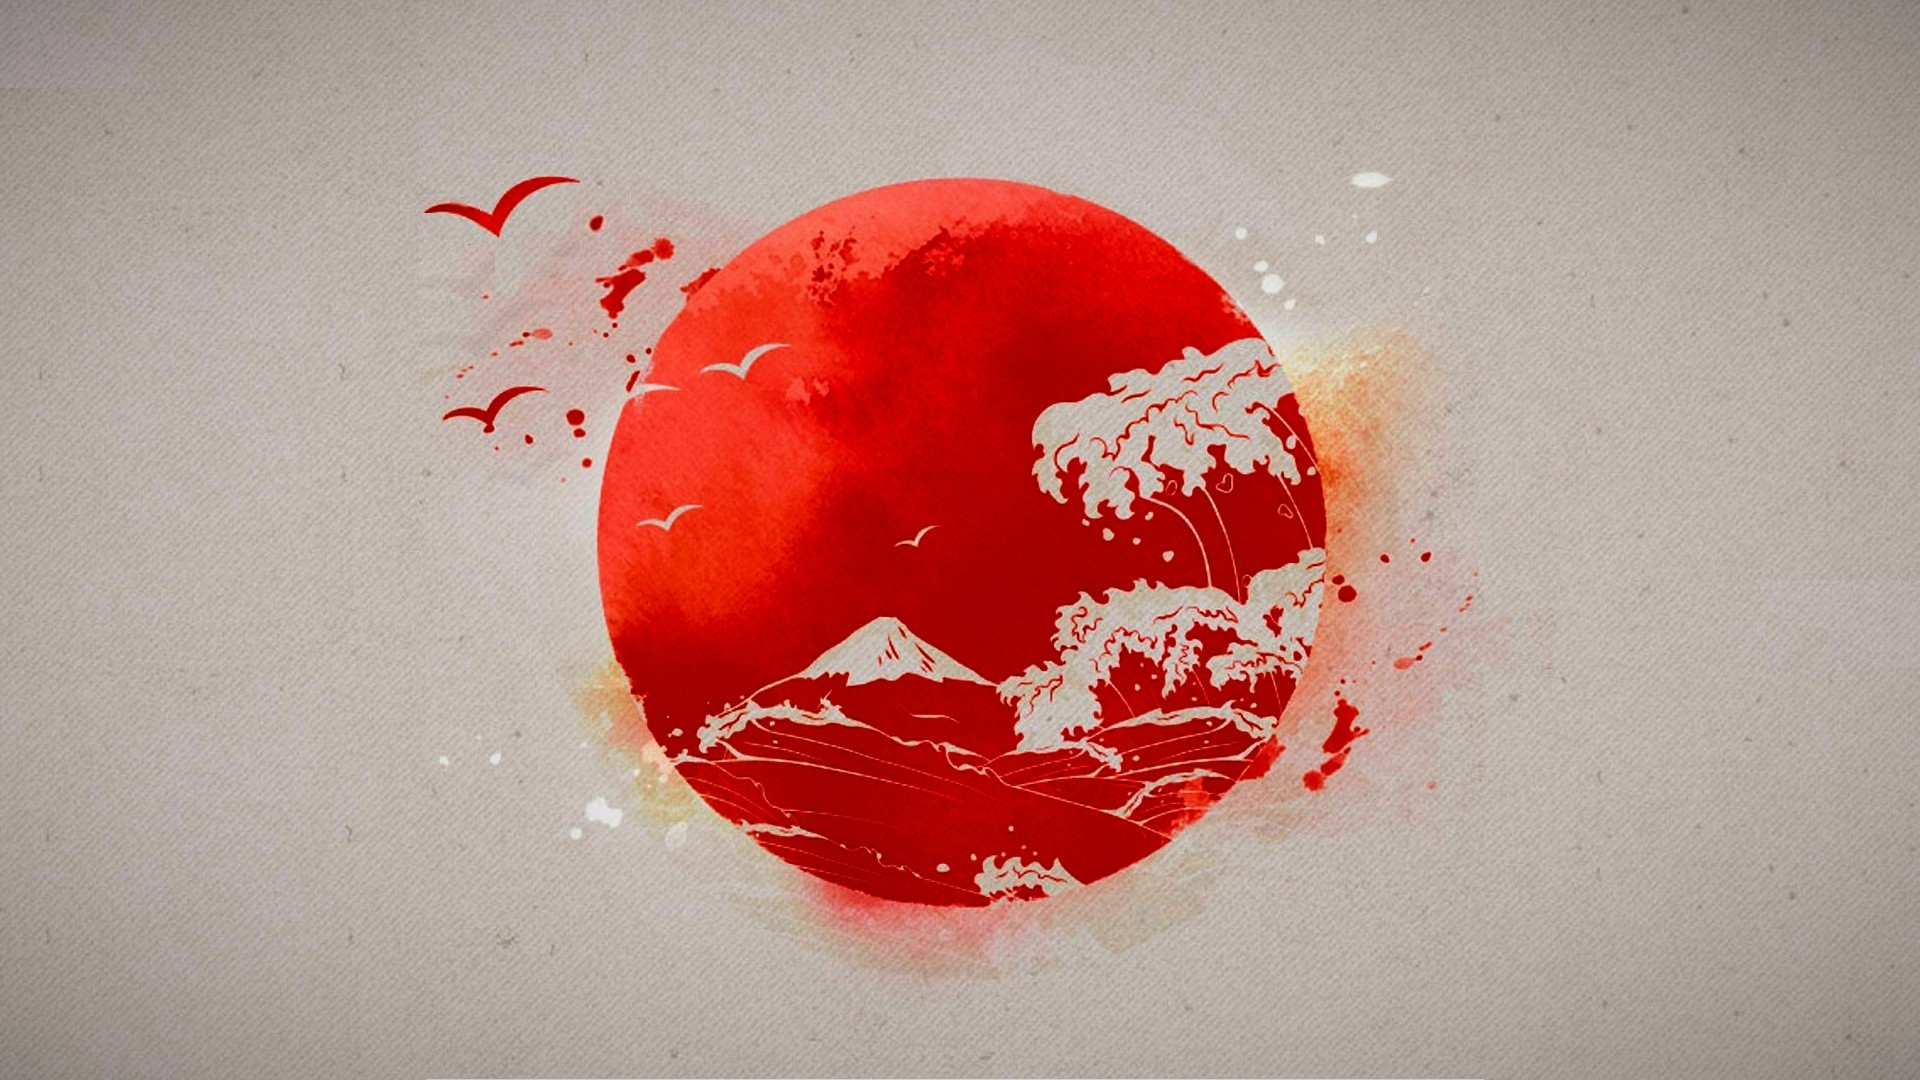 Res: 1920x1080, CC86: Japan Flag Wallpapers,  px, by Gerri Ayer